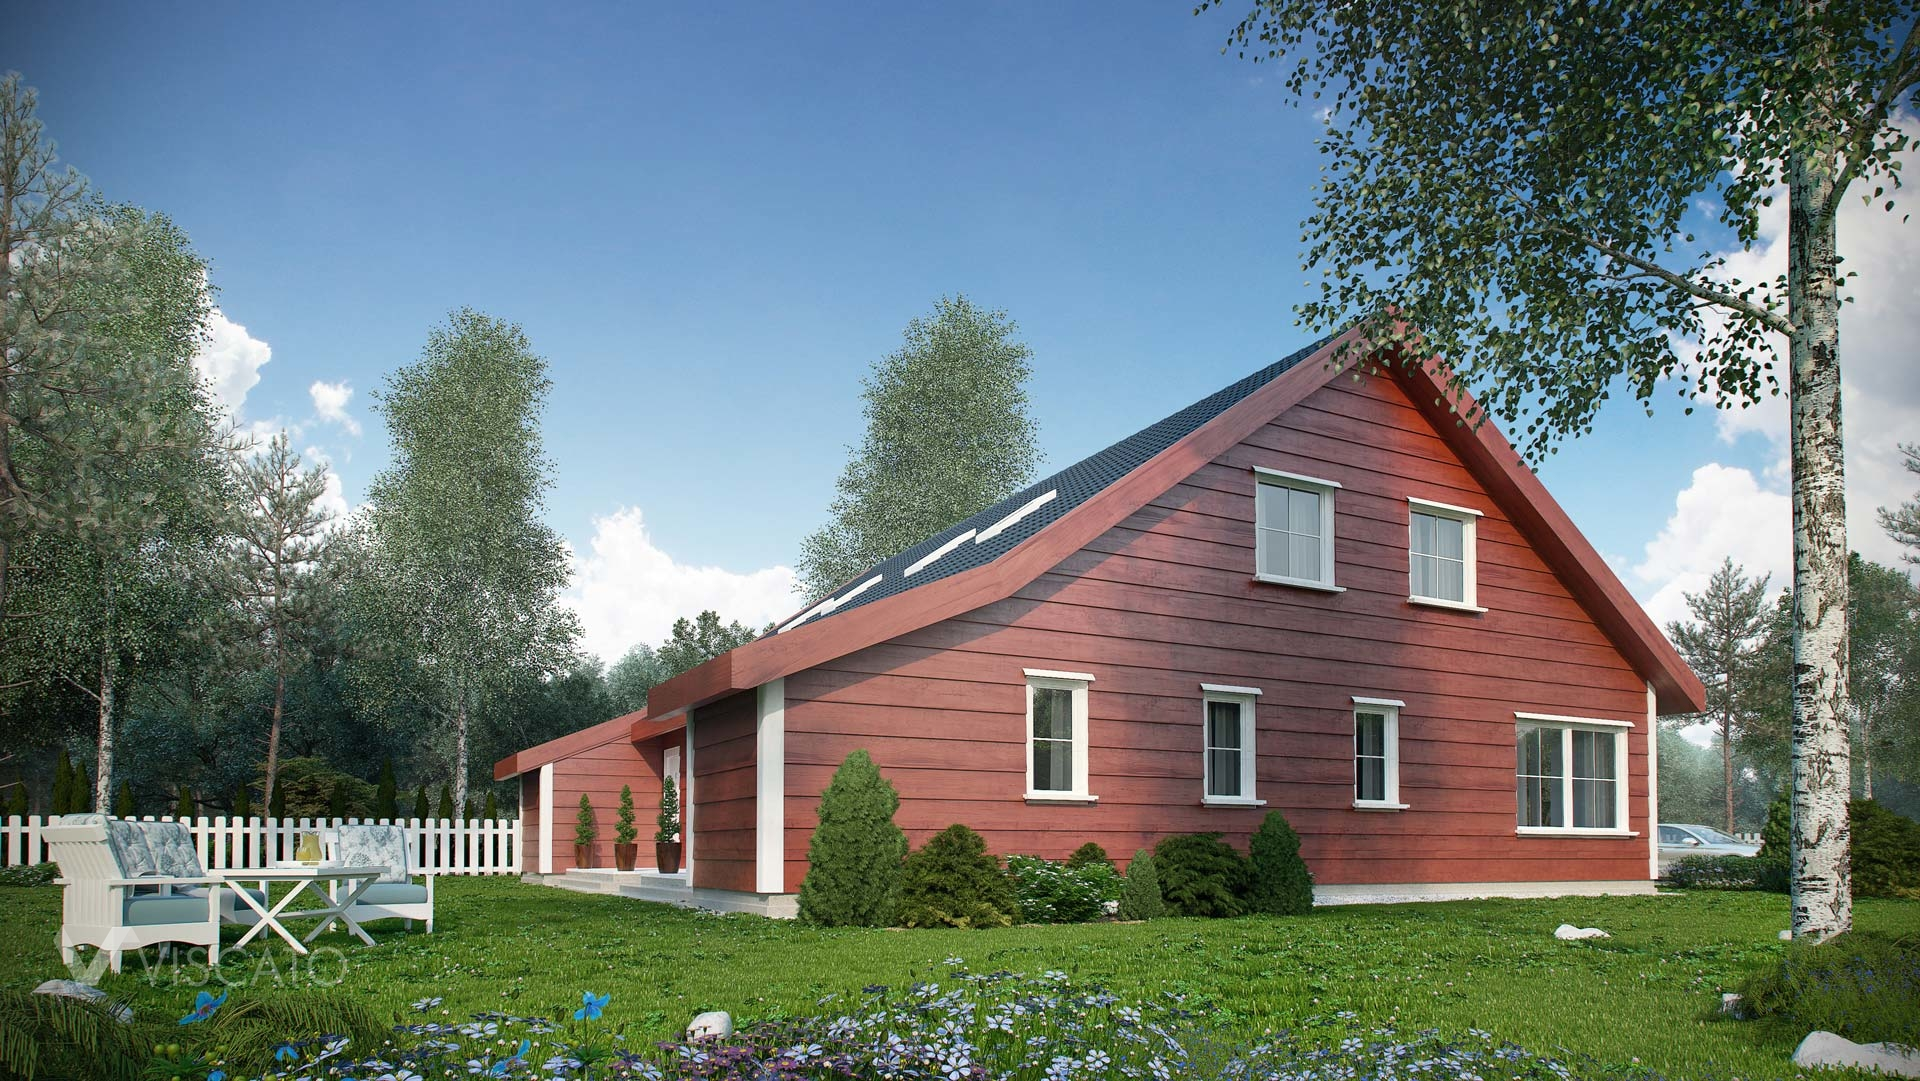 Tomannsbustad- exterior rendering of typical norwegian house - garden with trees, and garden furnitures